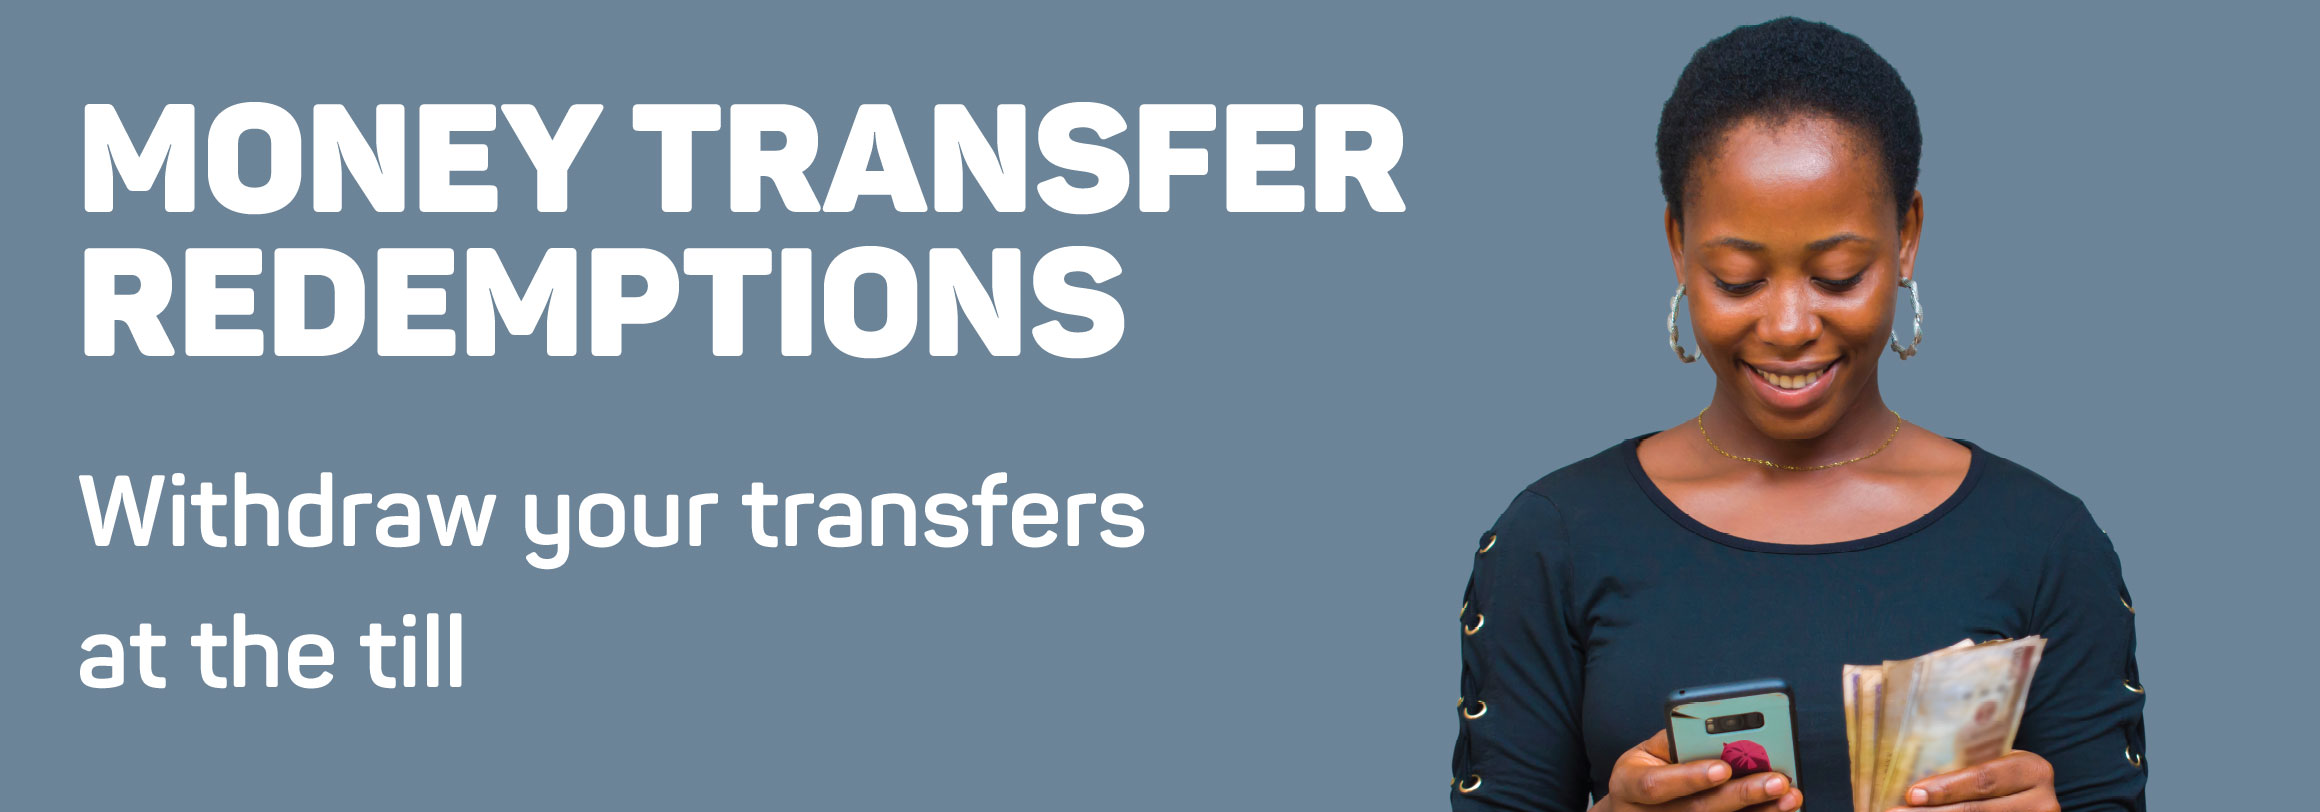 Money transfer redemtions. Withdraw your transfers at the till